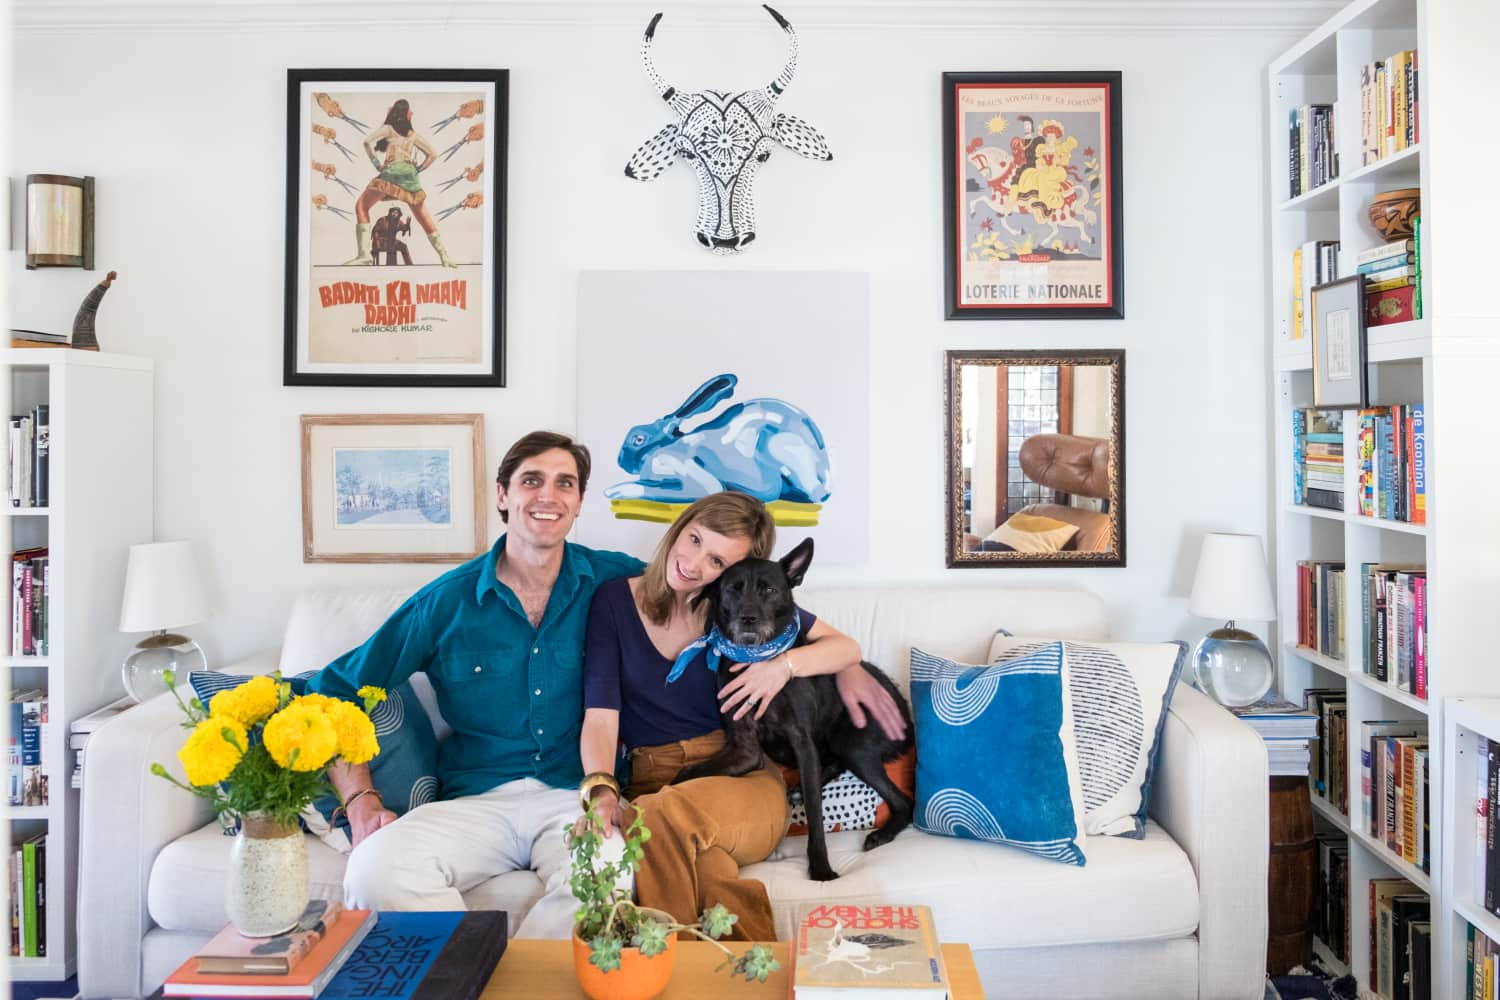 They'll Love It: Gift Ideas for Design-Minded Couples